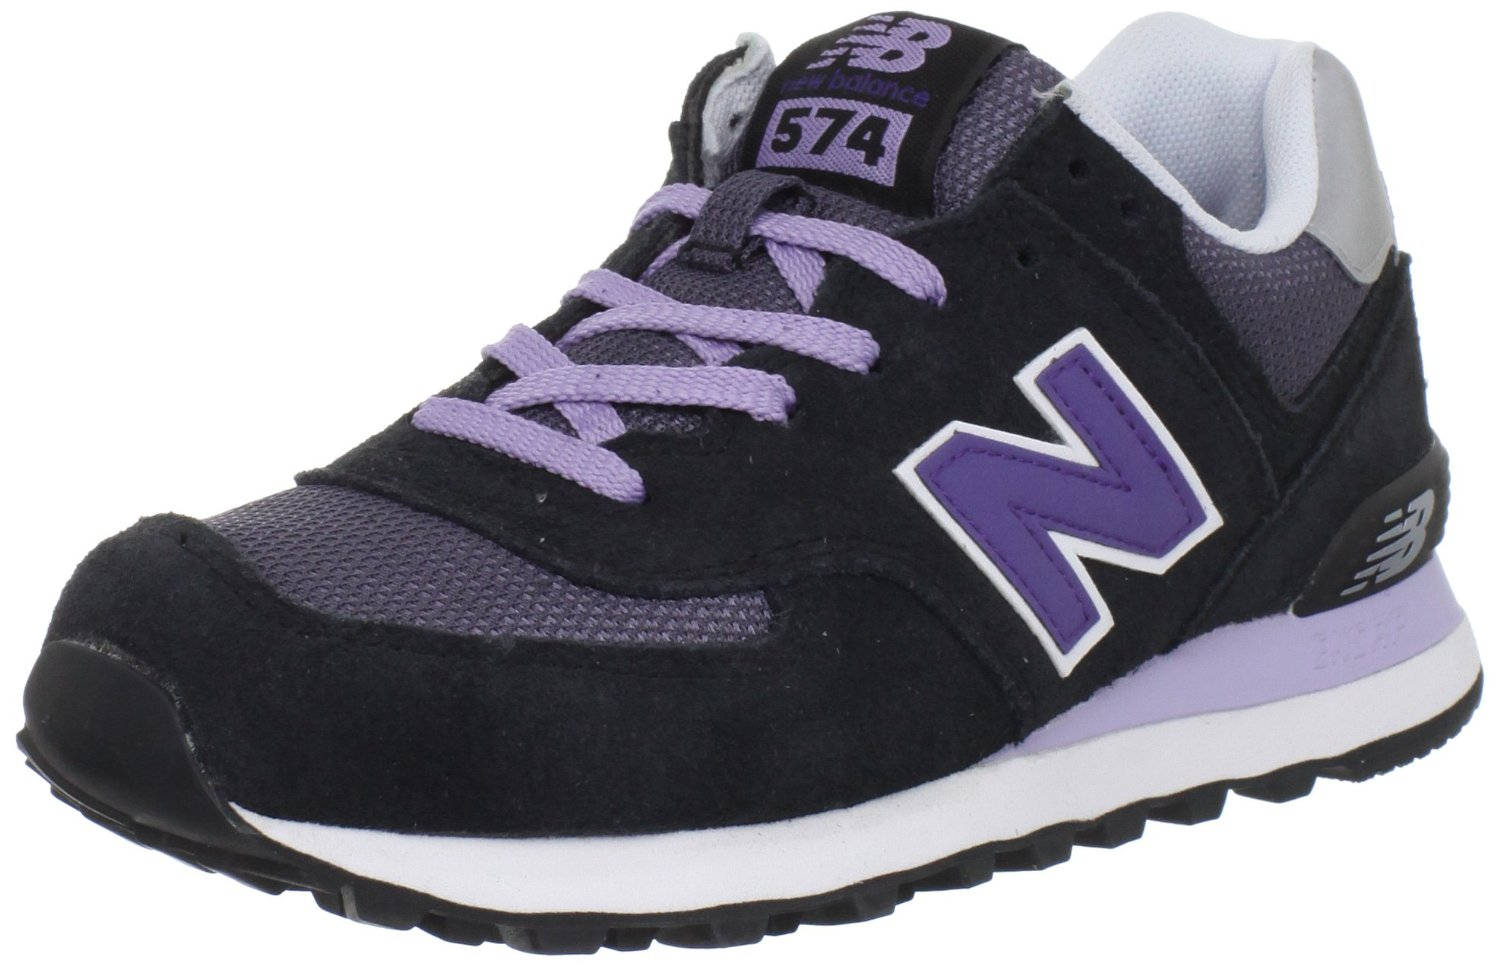 new balance purple & yellow 580 trainers